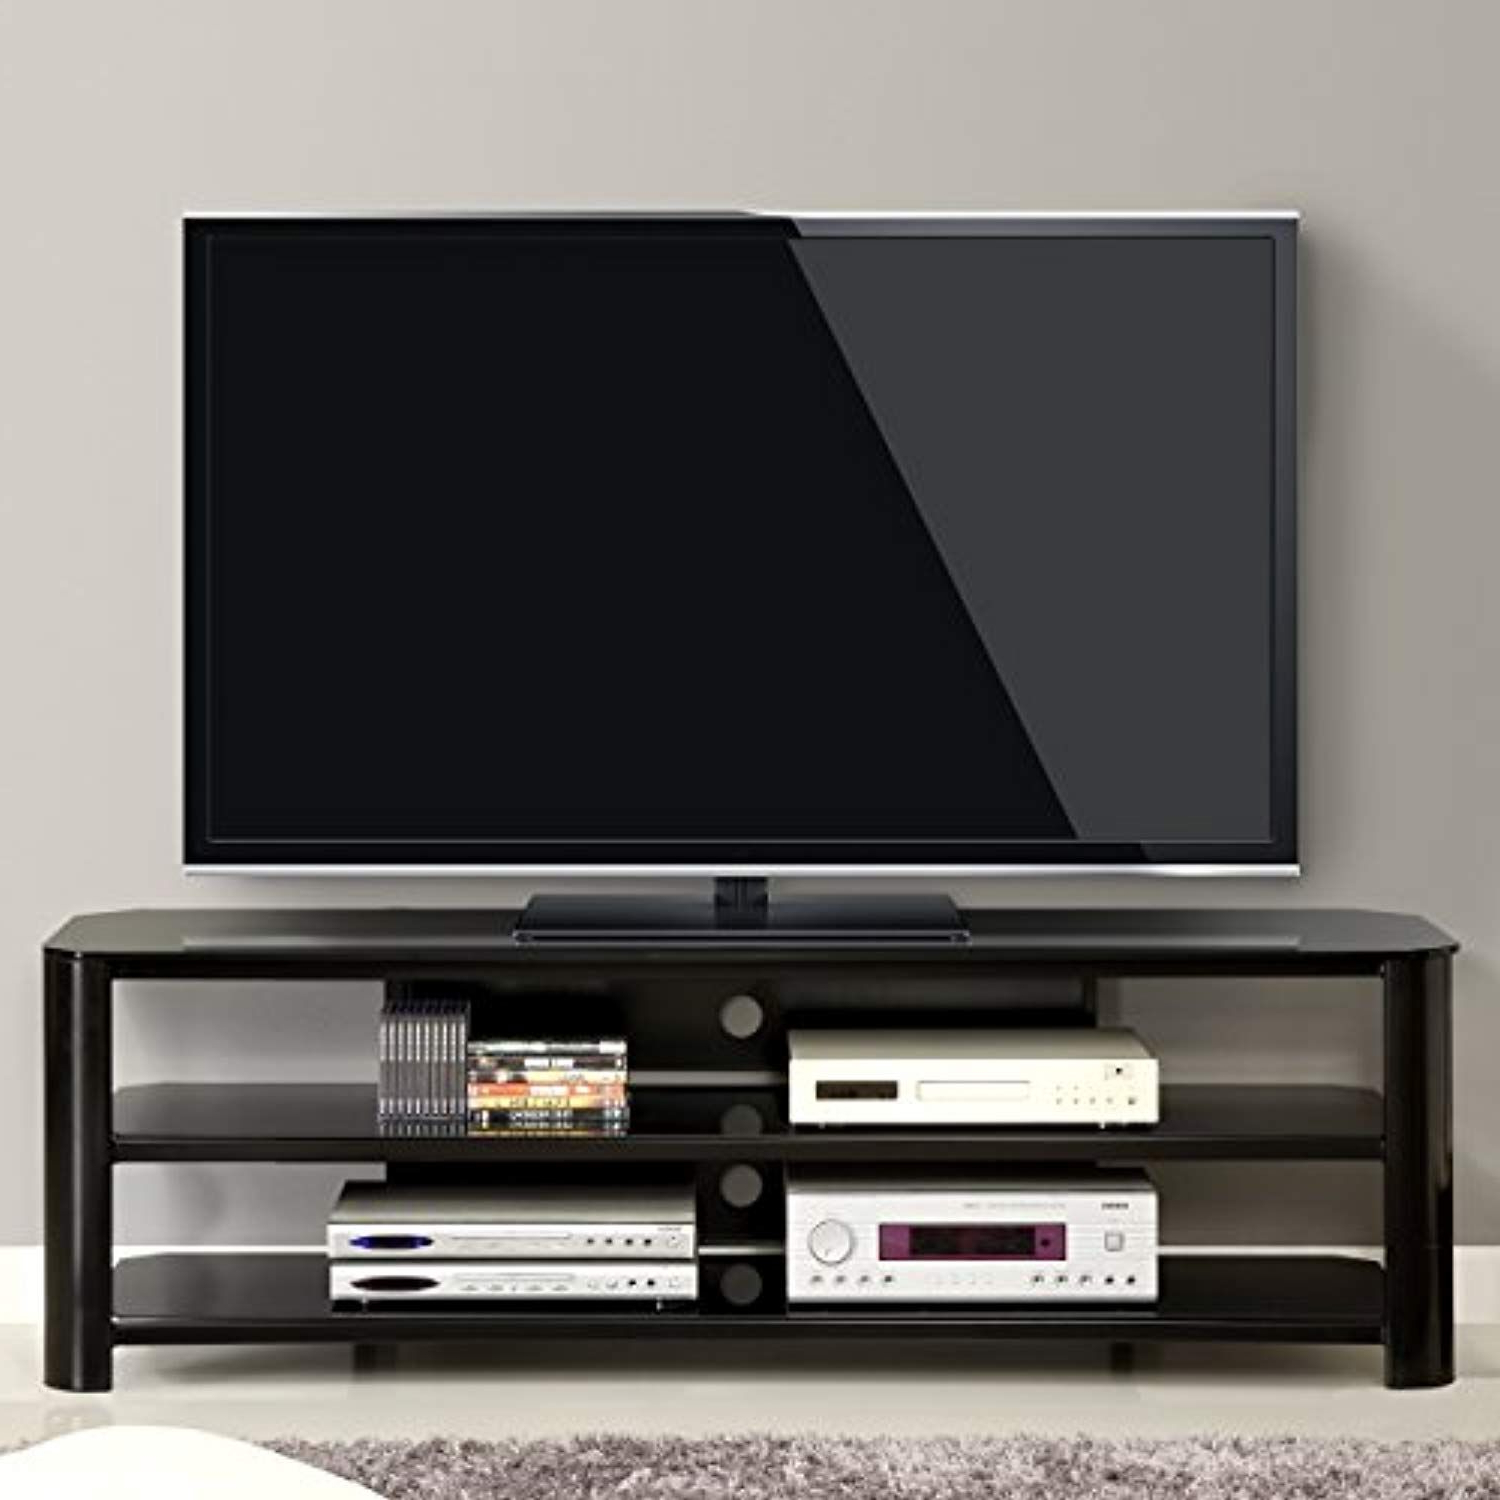 Innovex Tpt65G29 Oxford Fold N Snap 65€ Glass Tv Stand For Tvs Up With Regard To Oxford 70 Inch Tv Stands (Gallery 4 of 20)